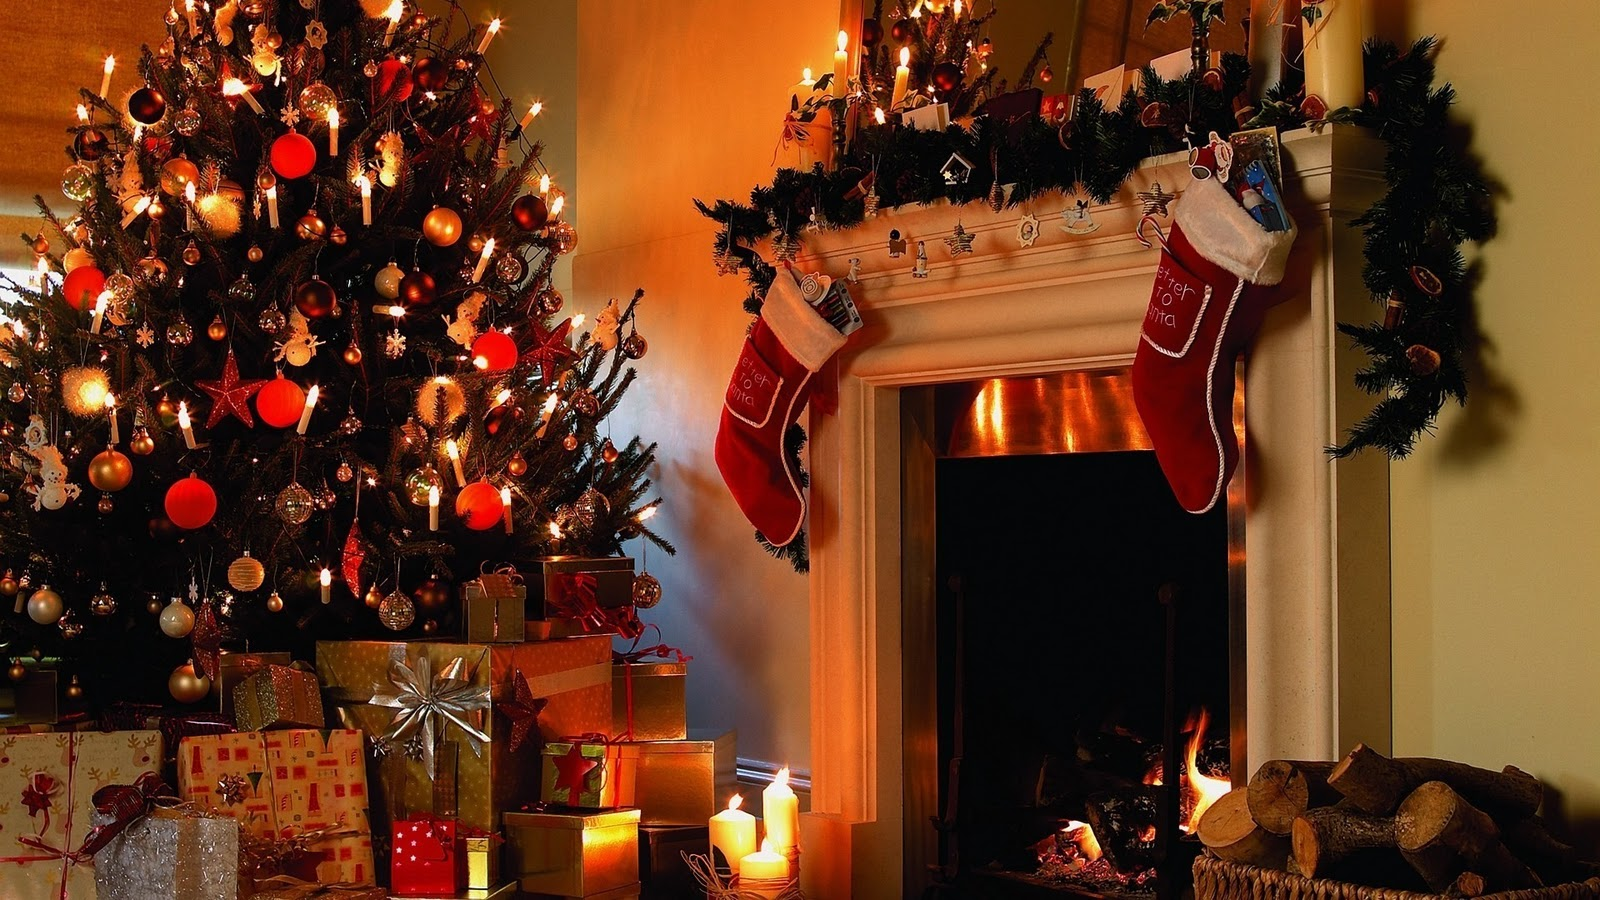 Christmas Tree and Fireplace wallpaper   Desktop Wallpaper 1600x900